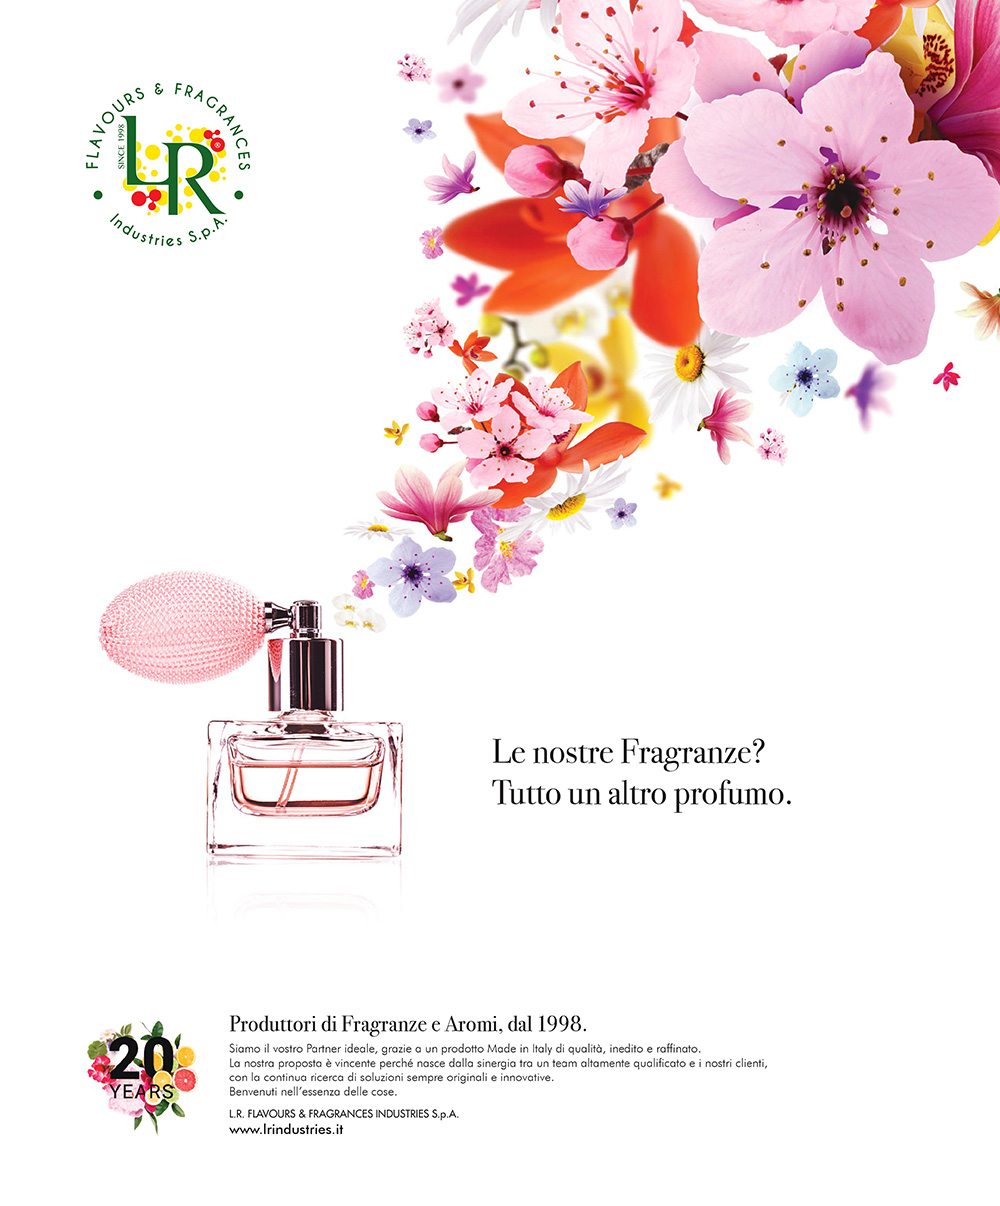 LR-fragranze